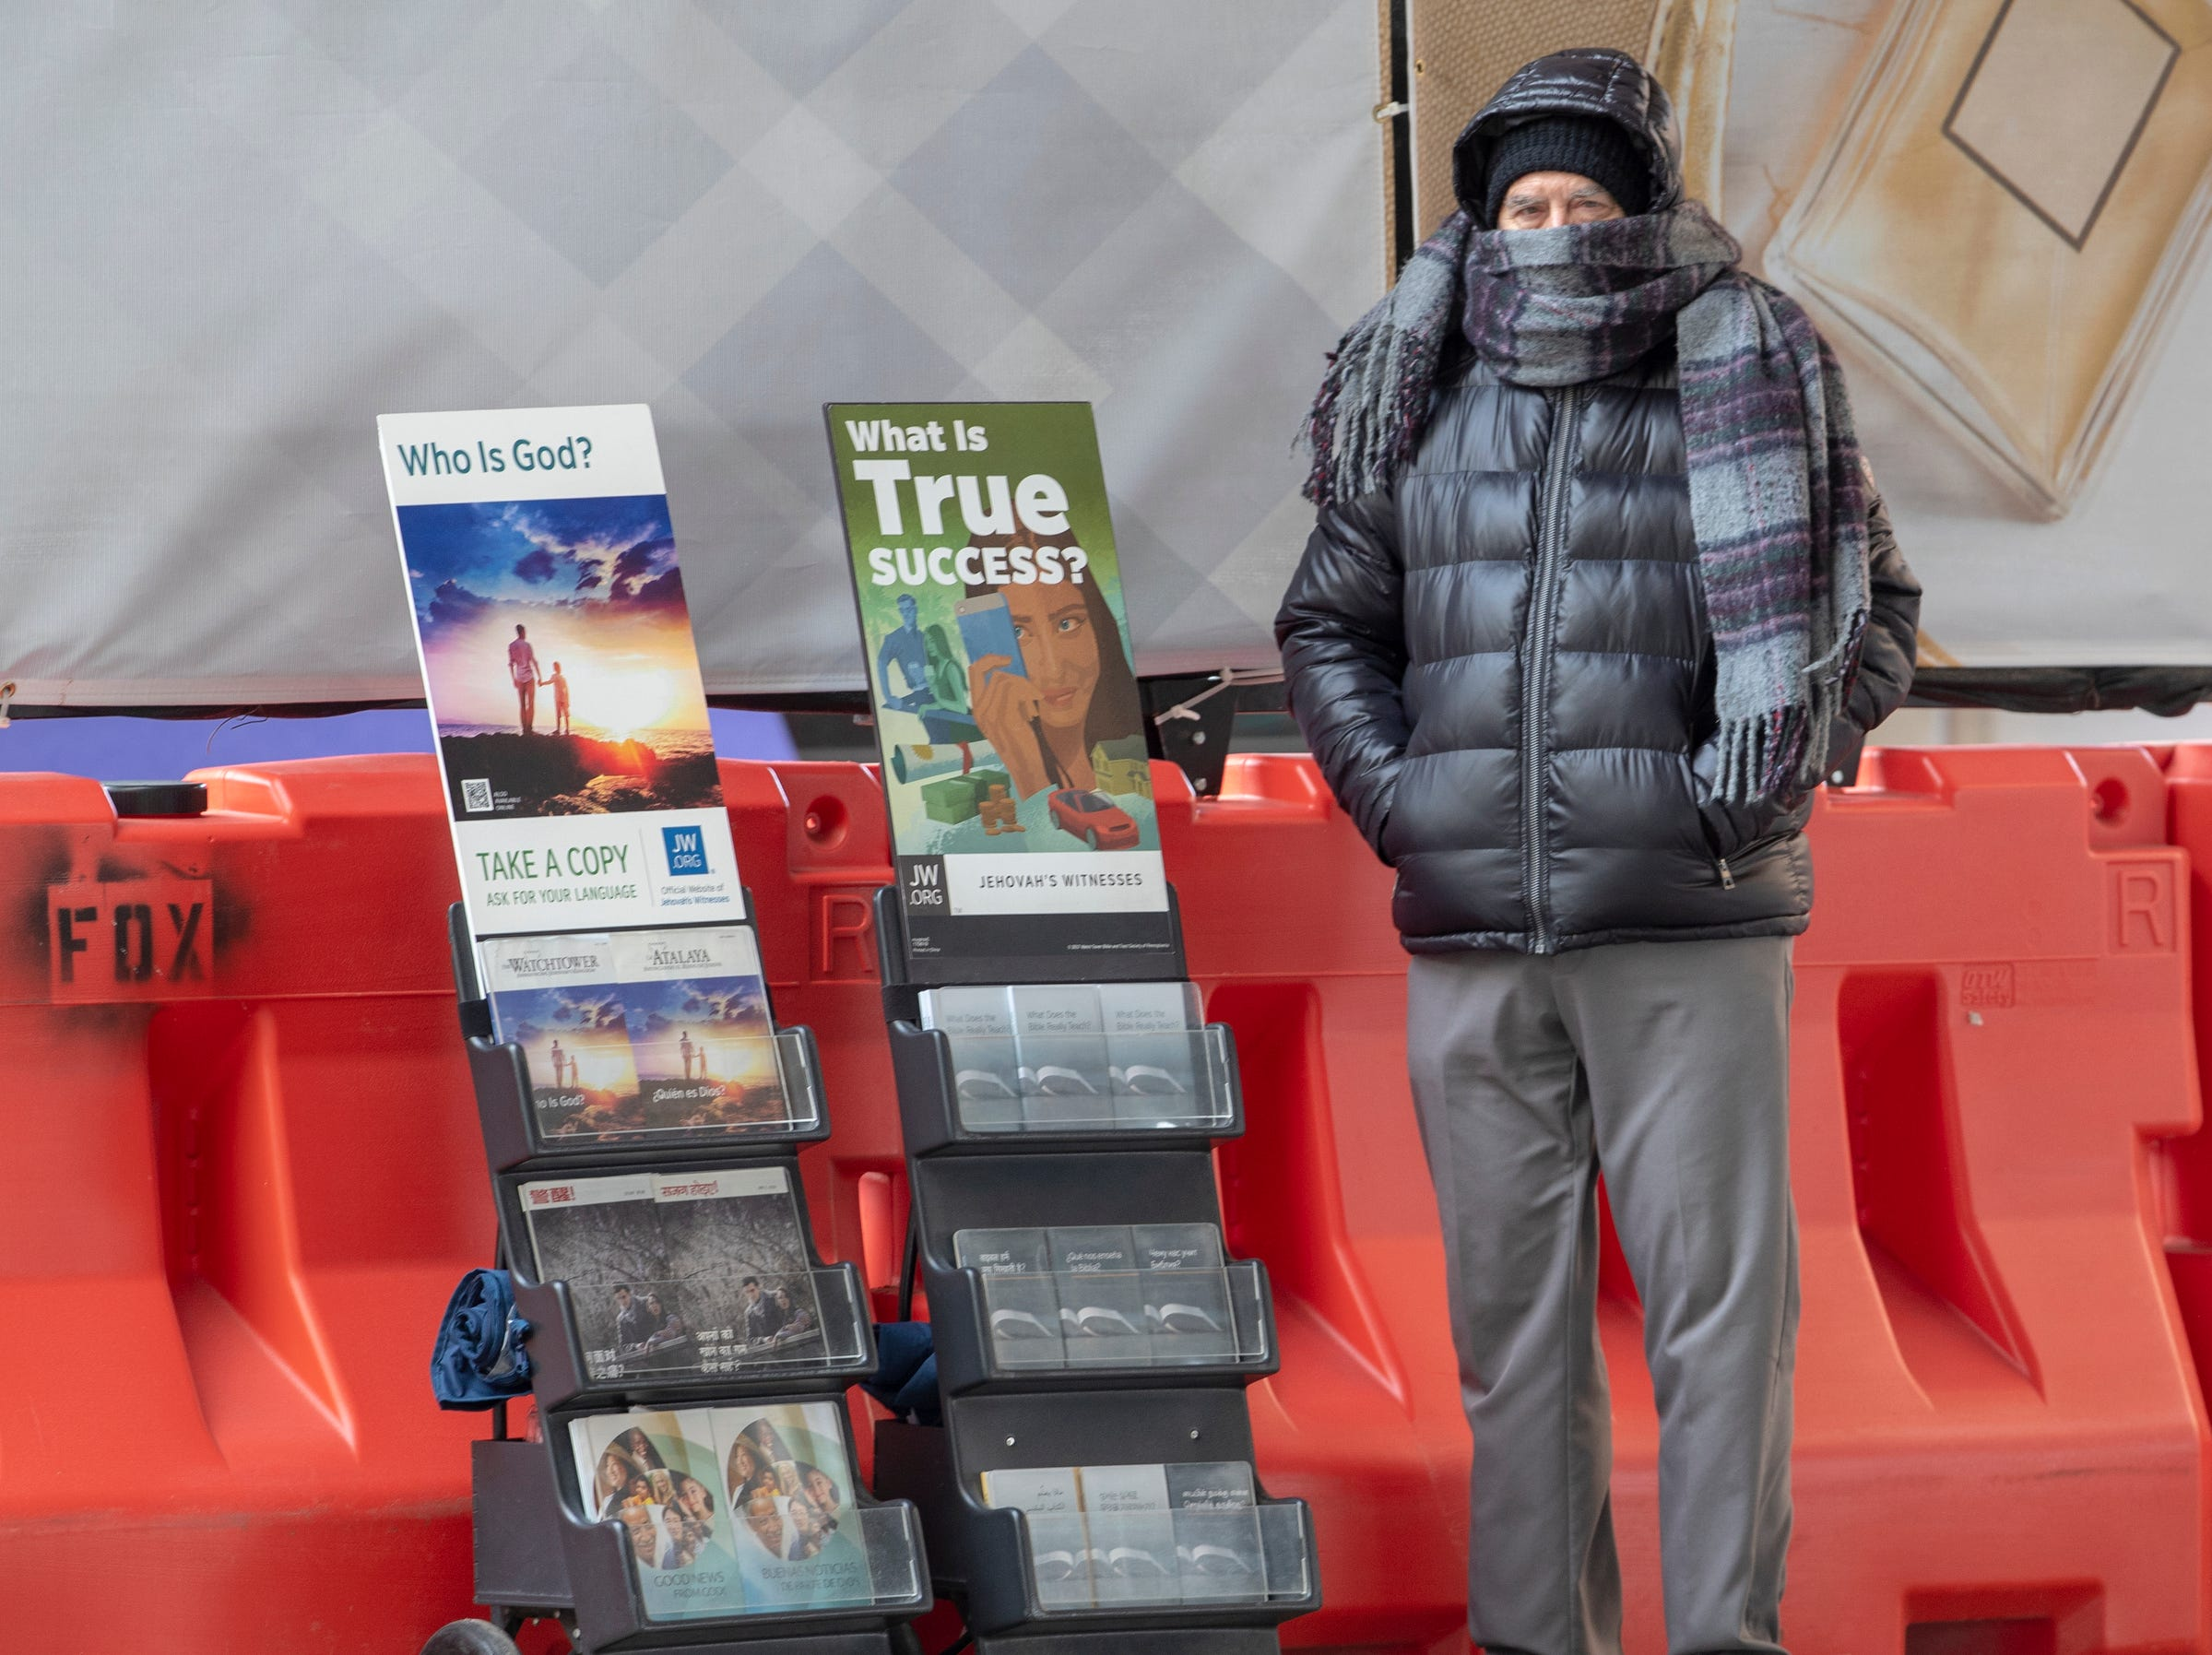 A man works a Jehovah's Witness kiosk in downtown on a cold day of about 15 degrees in central Indiana, Indianapolis, Tuesday, Jan. 29, 2019. The man, who declined to give his name, said he's from Michigan, so he's not bothered much by the cold.